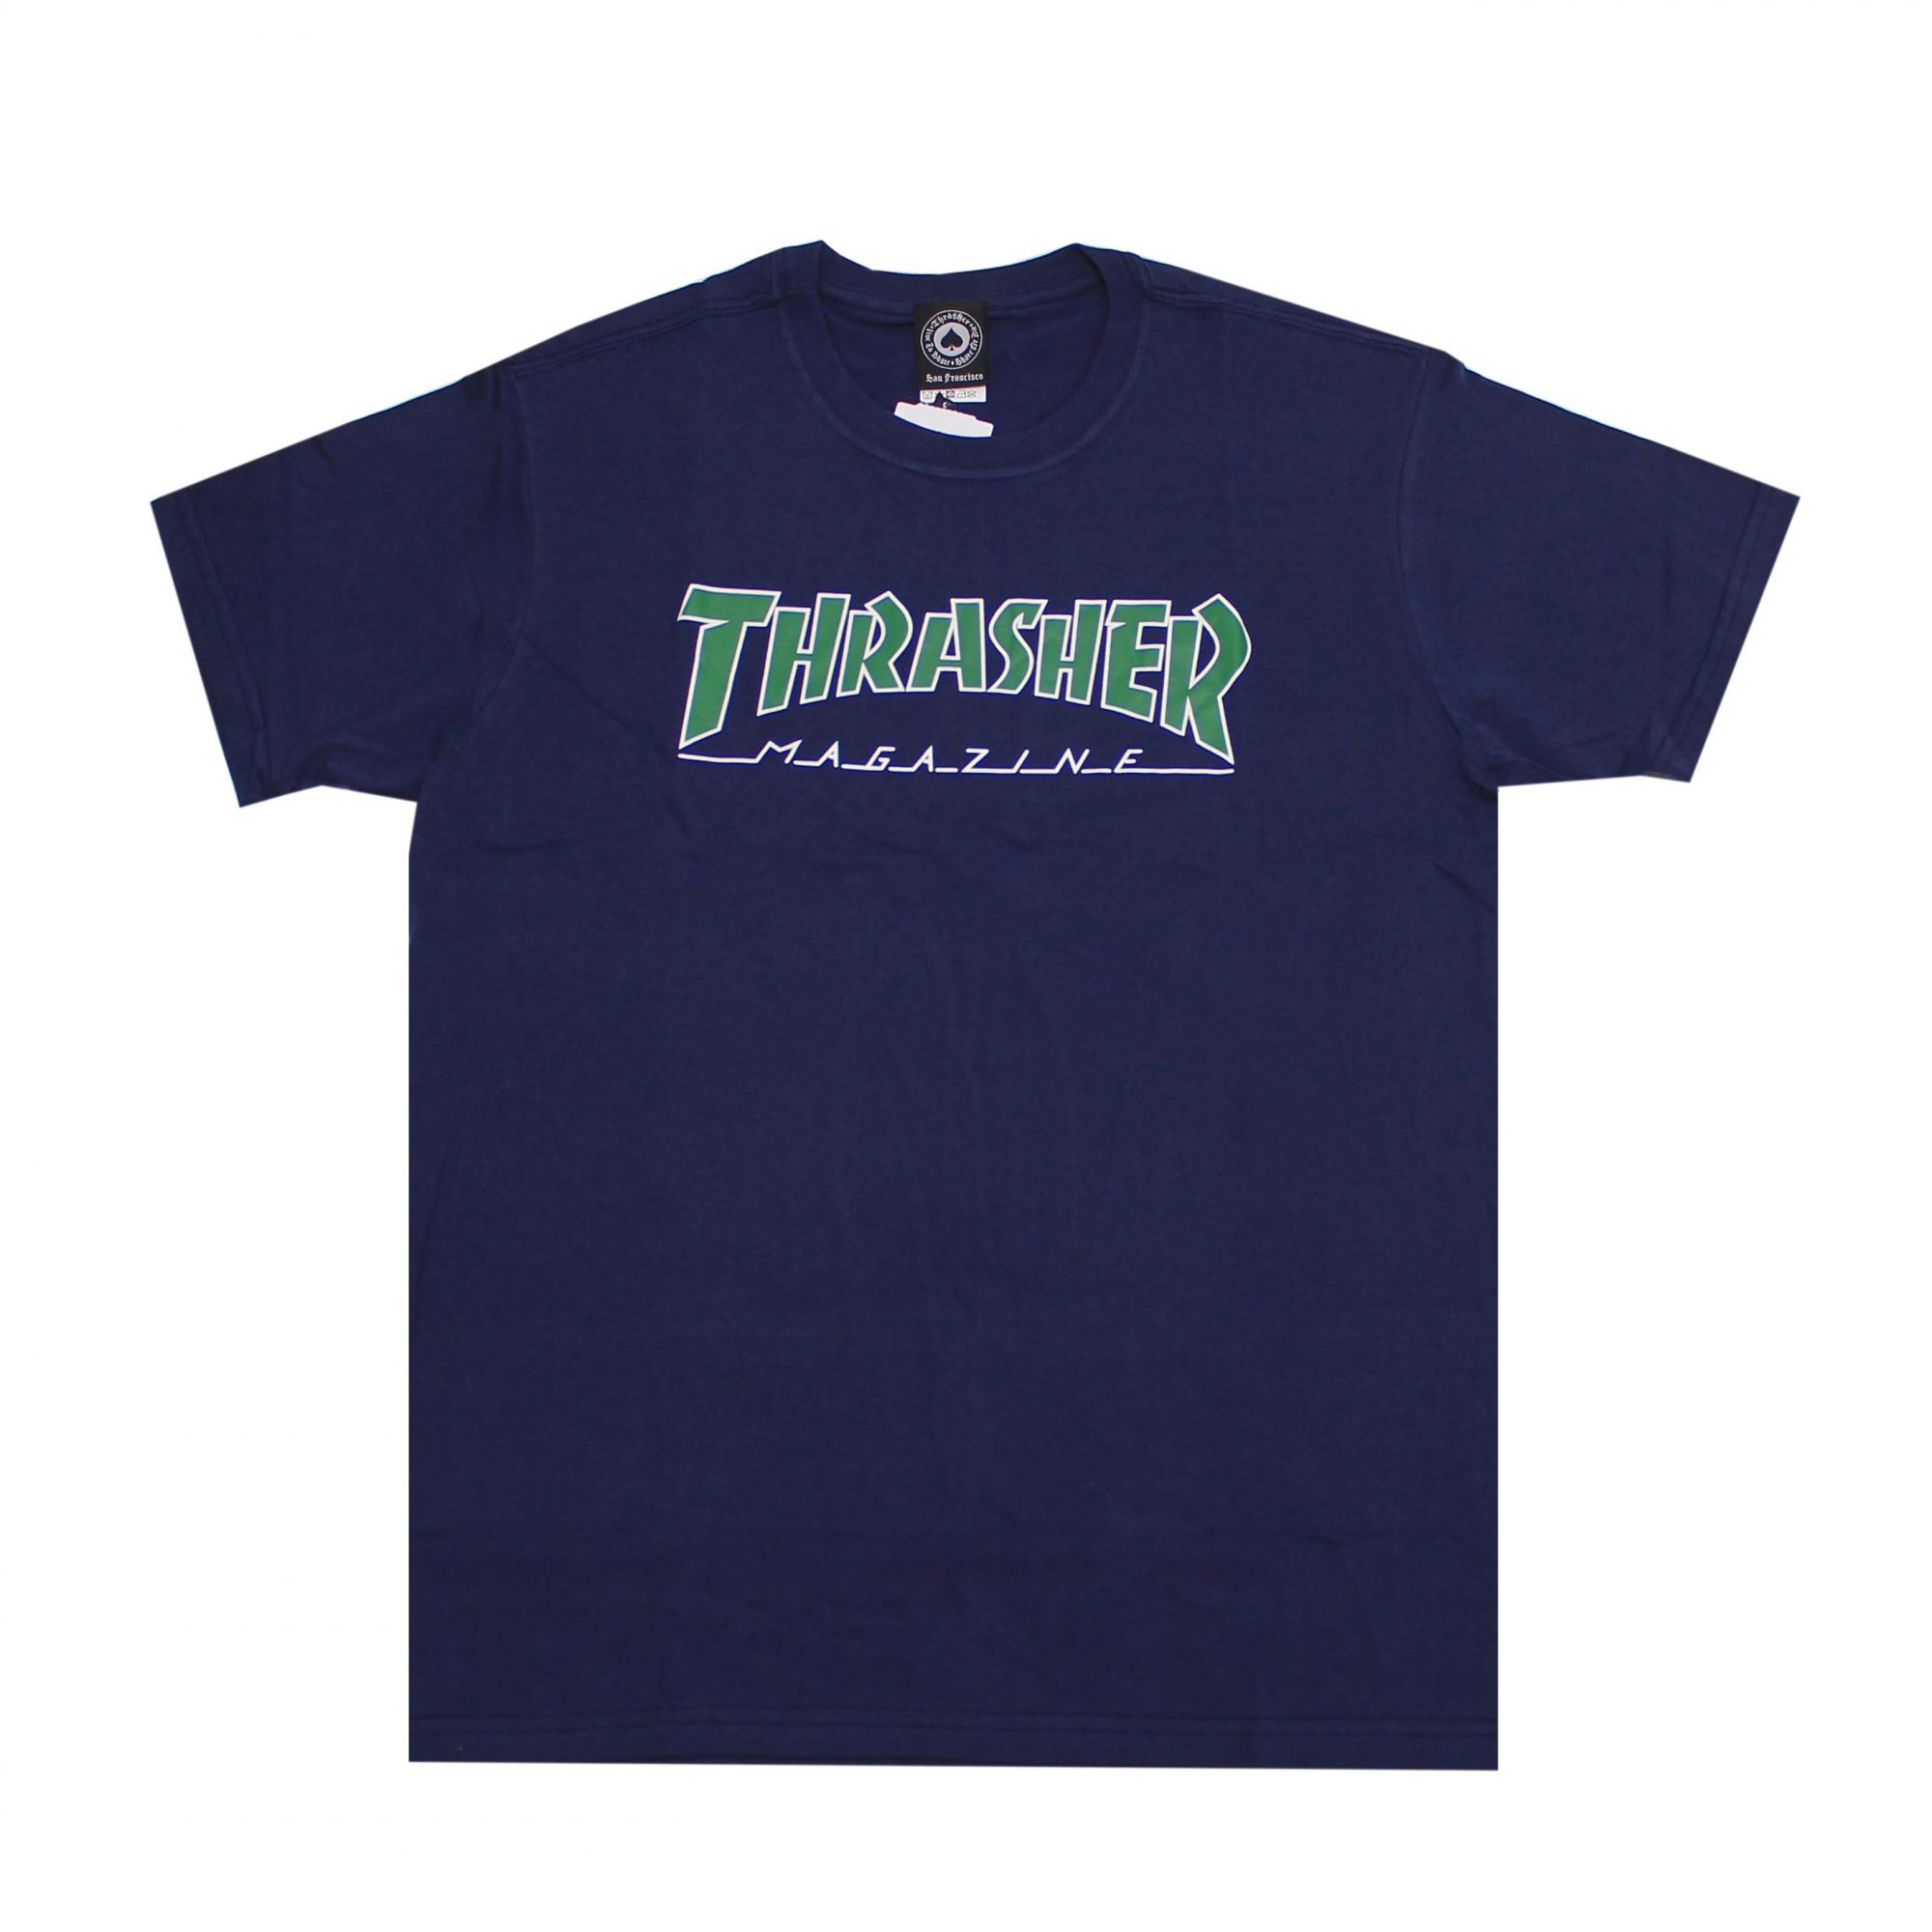 Camiseta Thrasher Magazine Outlined Azul Marinho